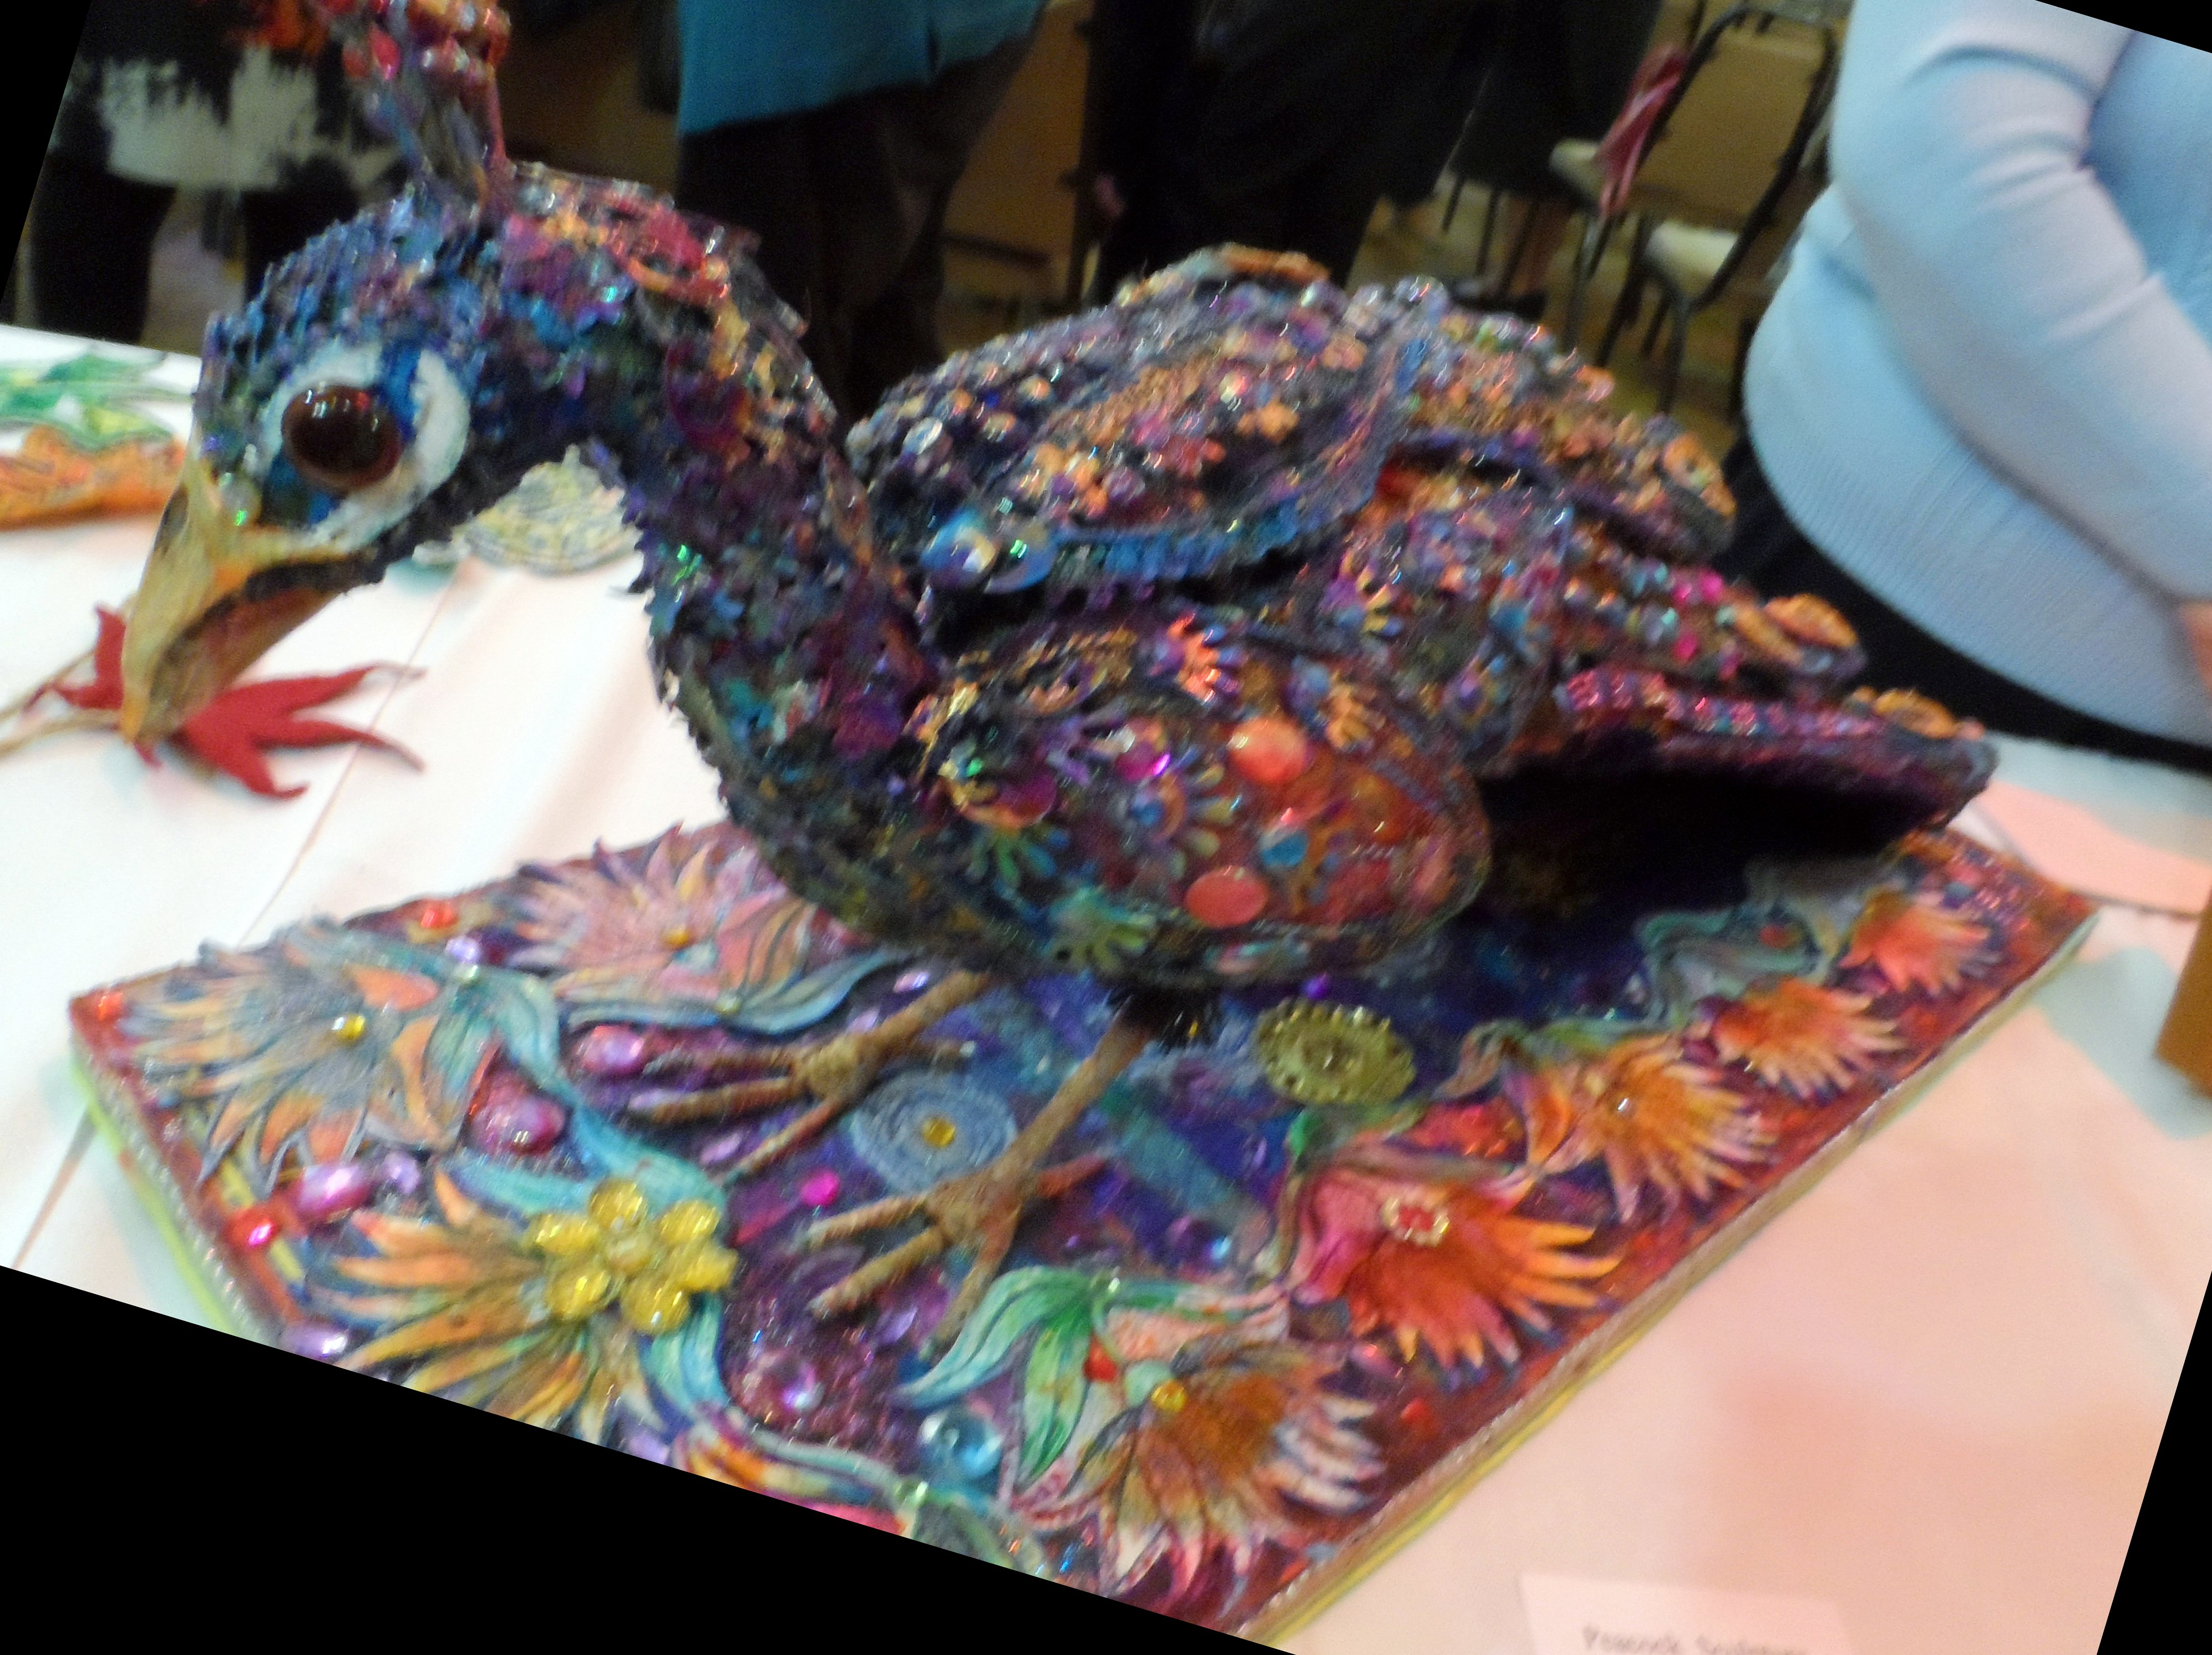 Peacock sculpture by Nikki Paramenter  at NW Regional Day, Leyland 2018